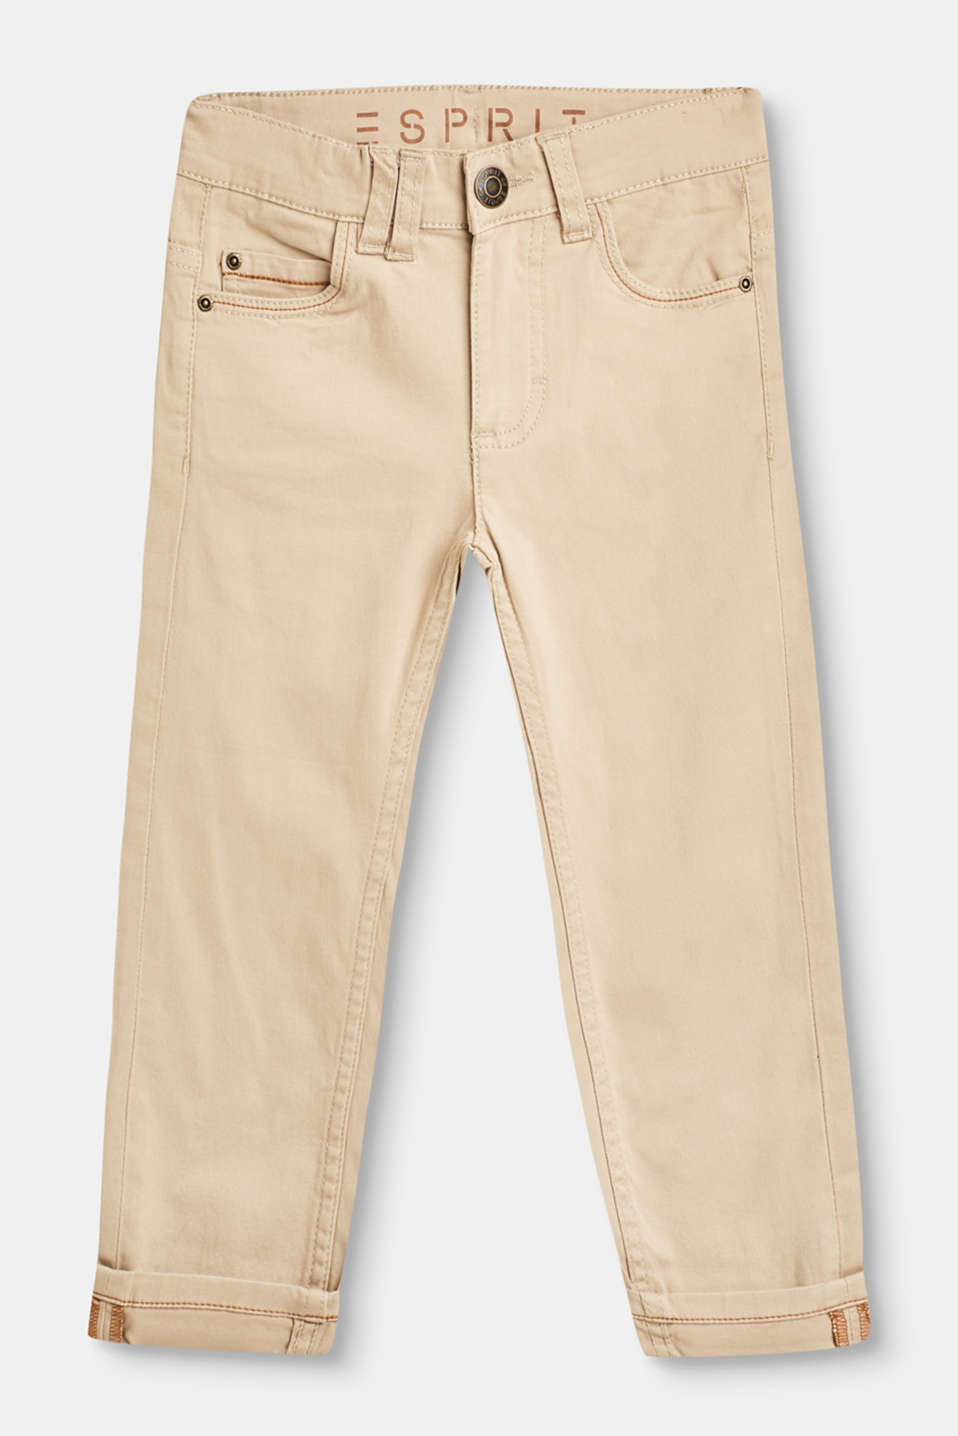 Esprit - Cotton trousers with stretch for comfort